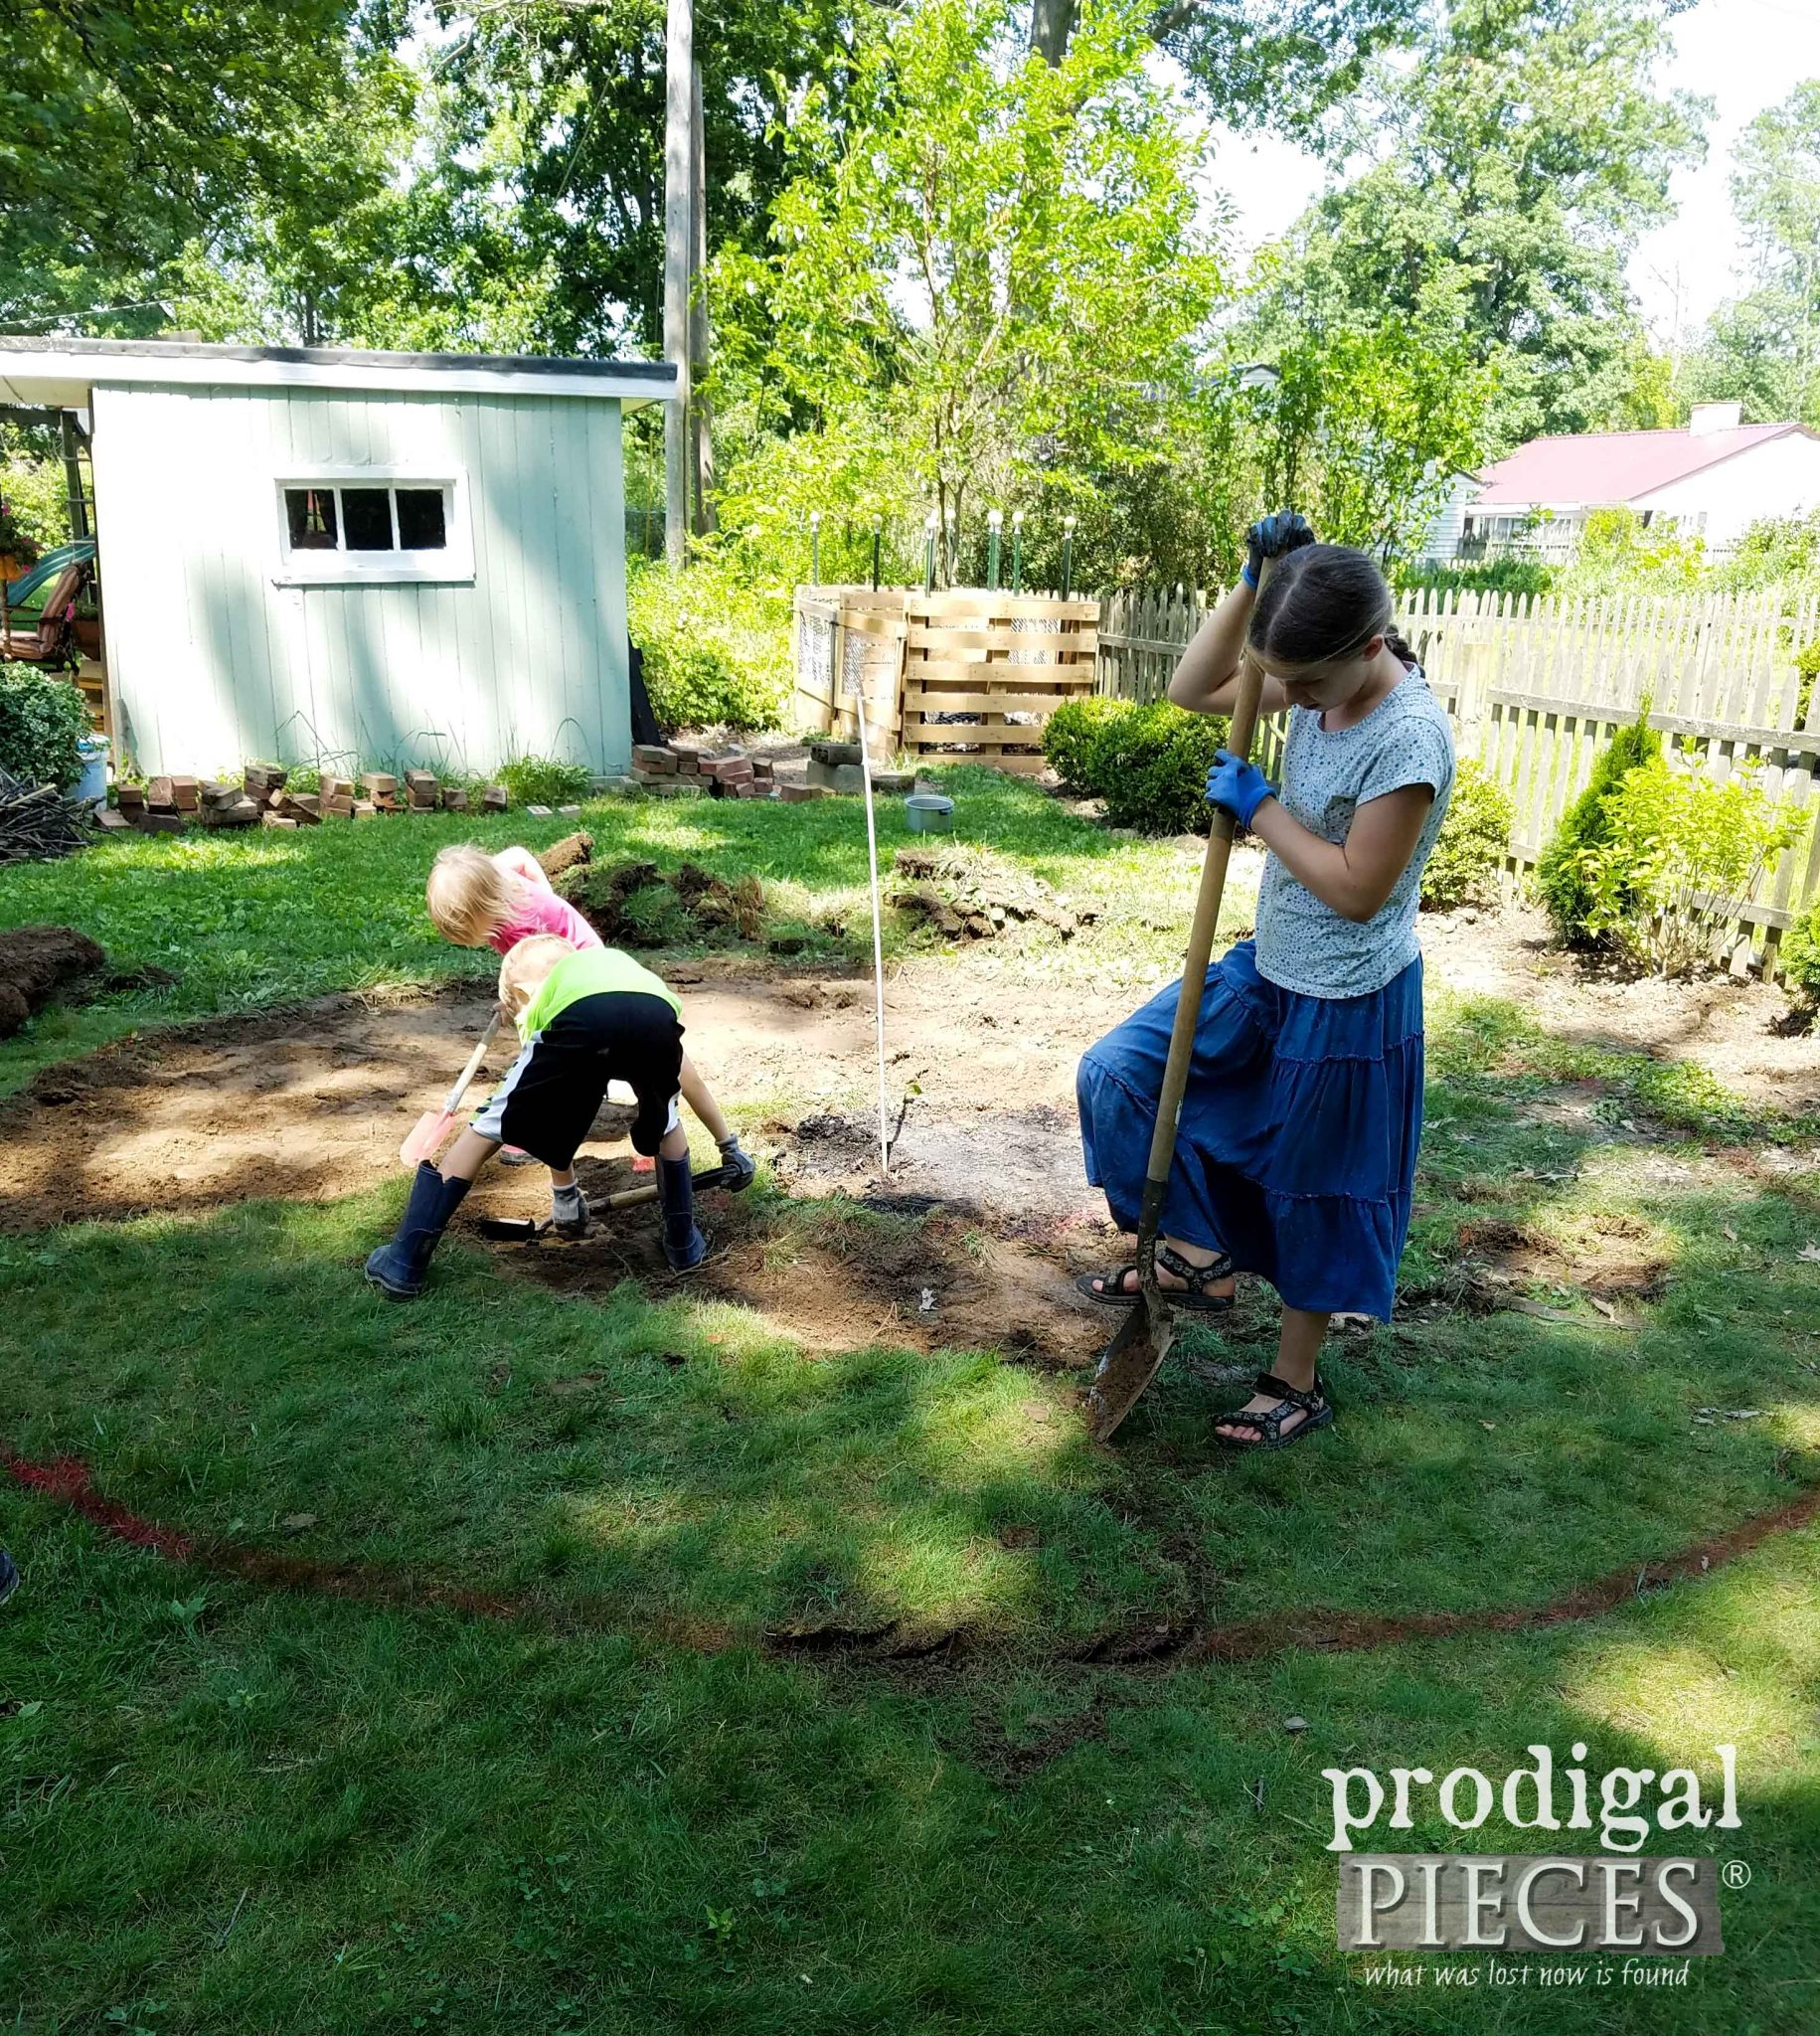 Kids Helping Remove Sod for DIY Fire Pit | prodigalpieces.com